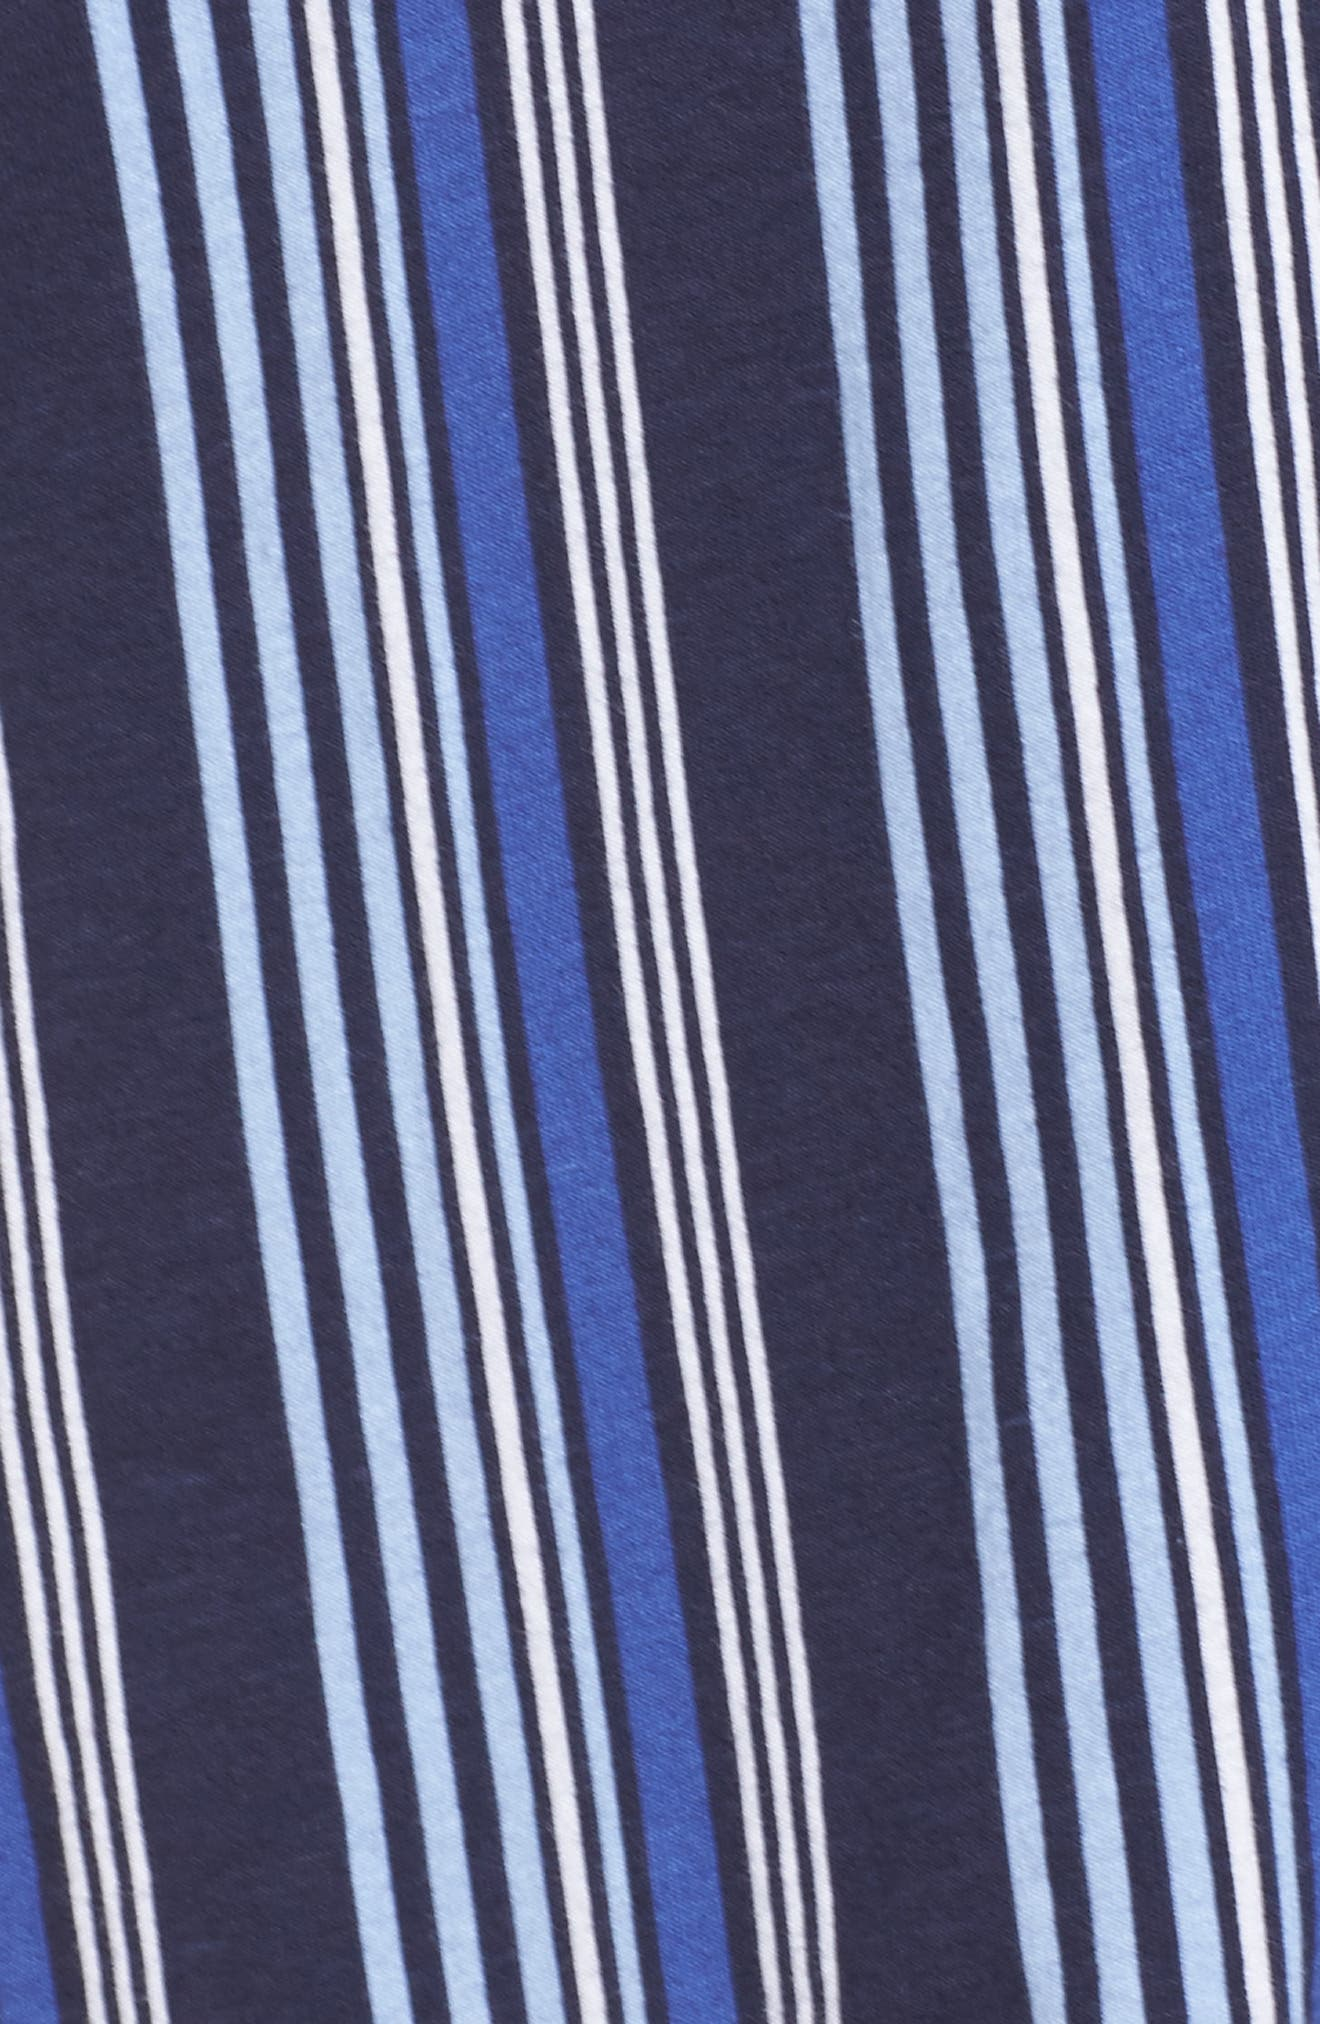 Stripe Sleep Shirt,                             Alternate thumbnail 5, color,                             486